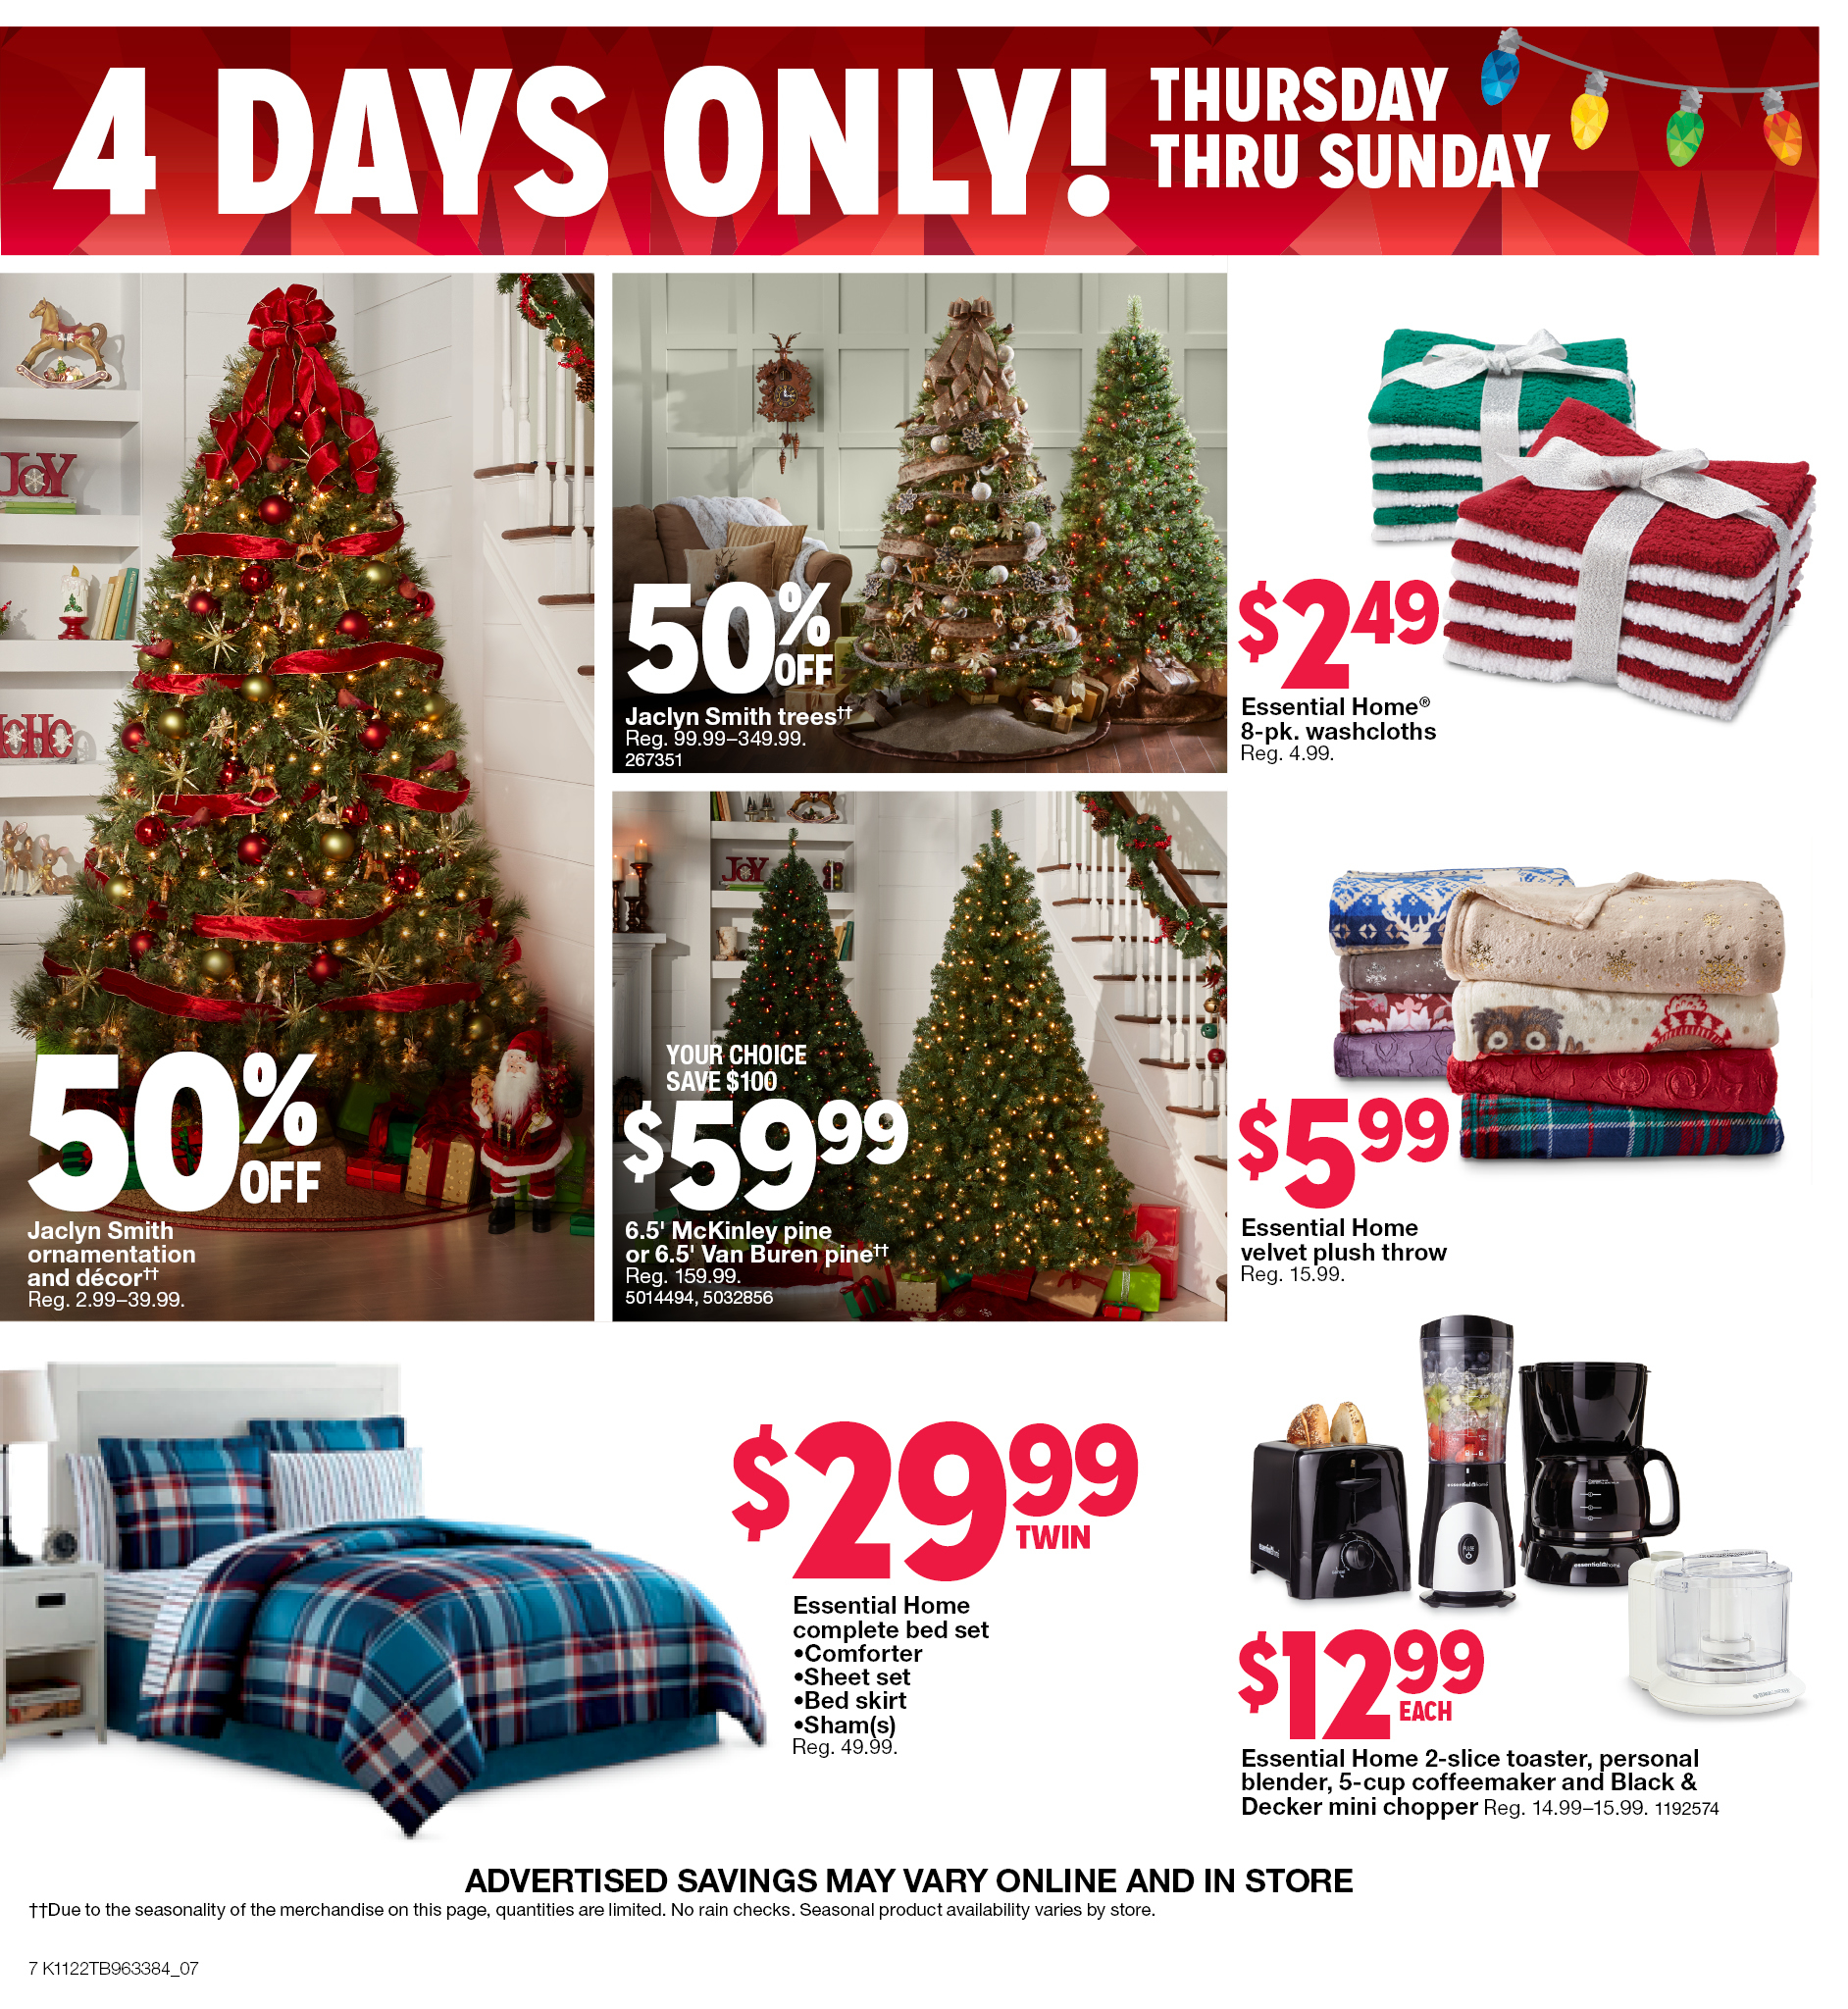 Kmart Black Friday 2018 Ad & Deals | Brad\'s Deals